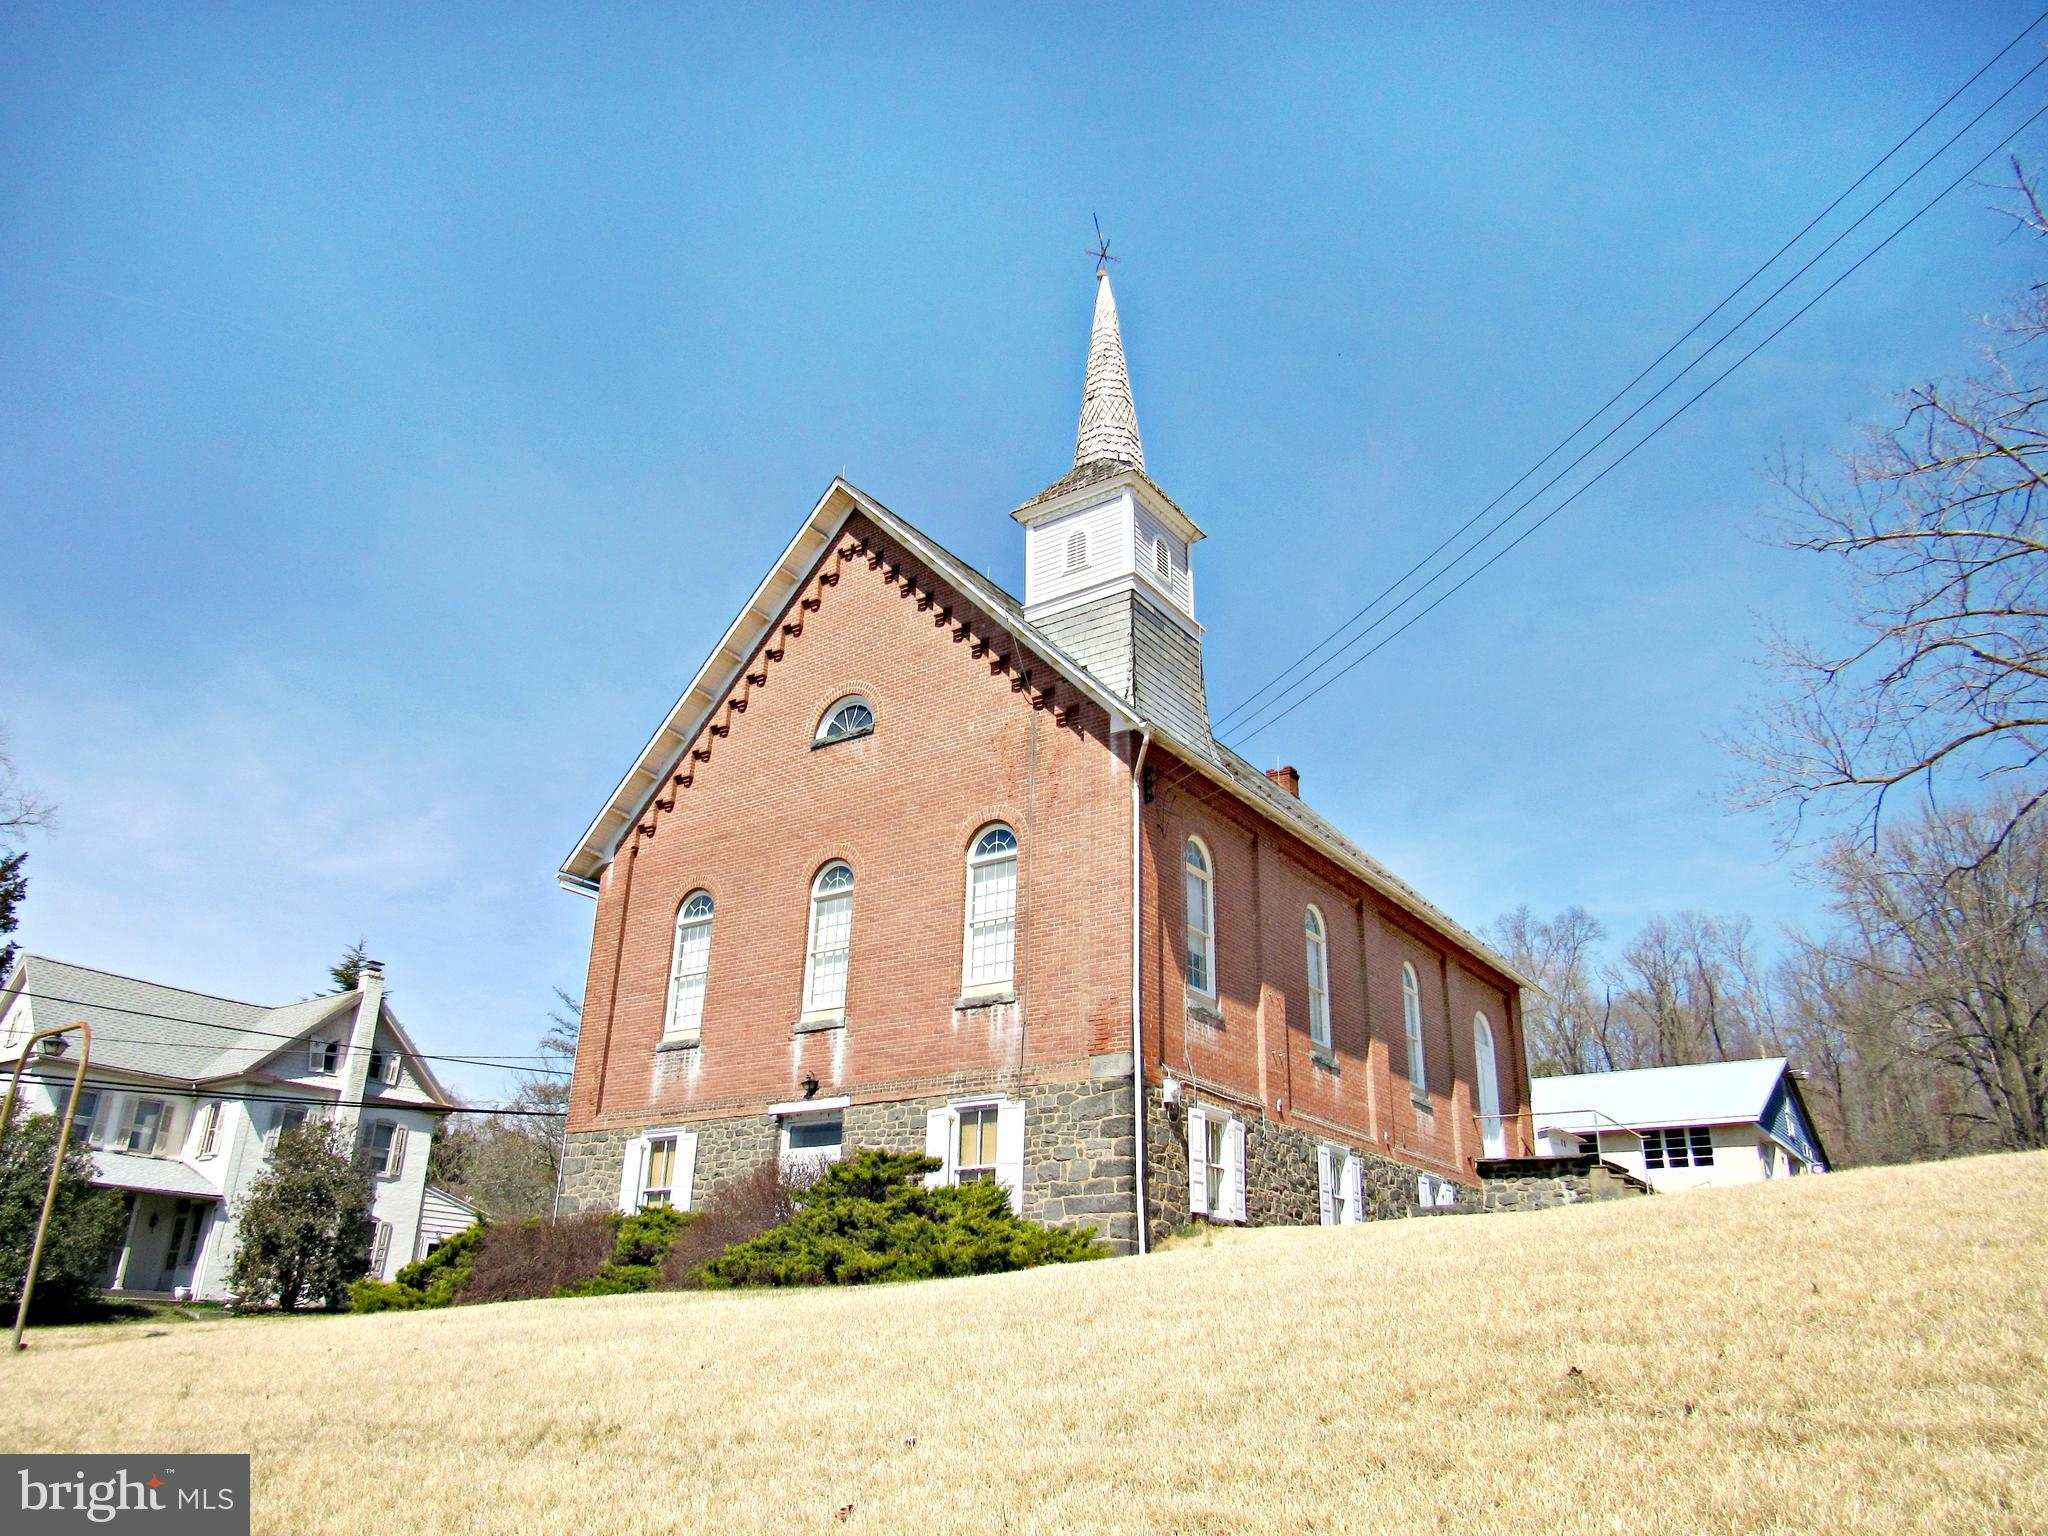 Wonderfully maintained chapel built in 1898. Upper level is a worship area that is 34' x 45' plus large stage. Current seating for approximately 175. Lower level meeting room is 32' x 34'. Lower level also has entrance foyer with two stairways heading to upstairs, heater room and storage room. Building has heat but no interior plumbing. Use your imagination. Many possible uses. Current zoning Borough Residential which does permit professional office and some commercial uses. Call listing agent for details.